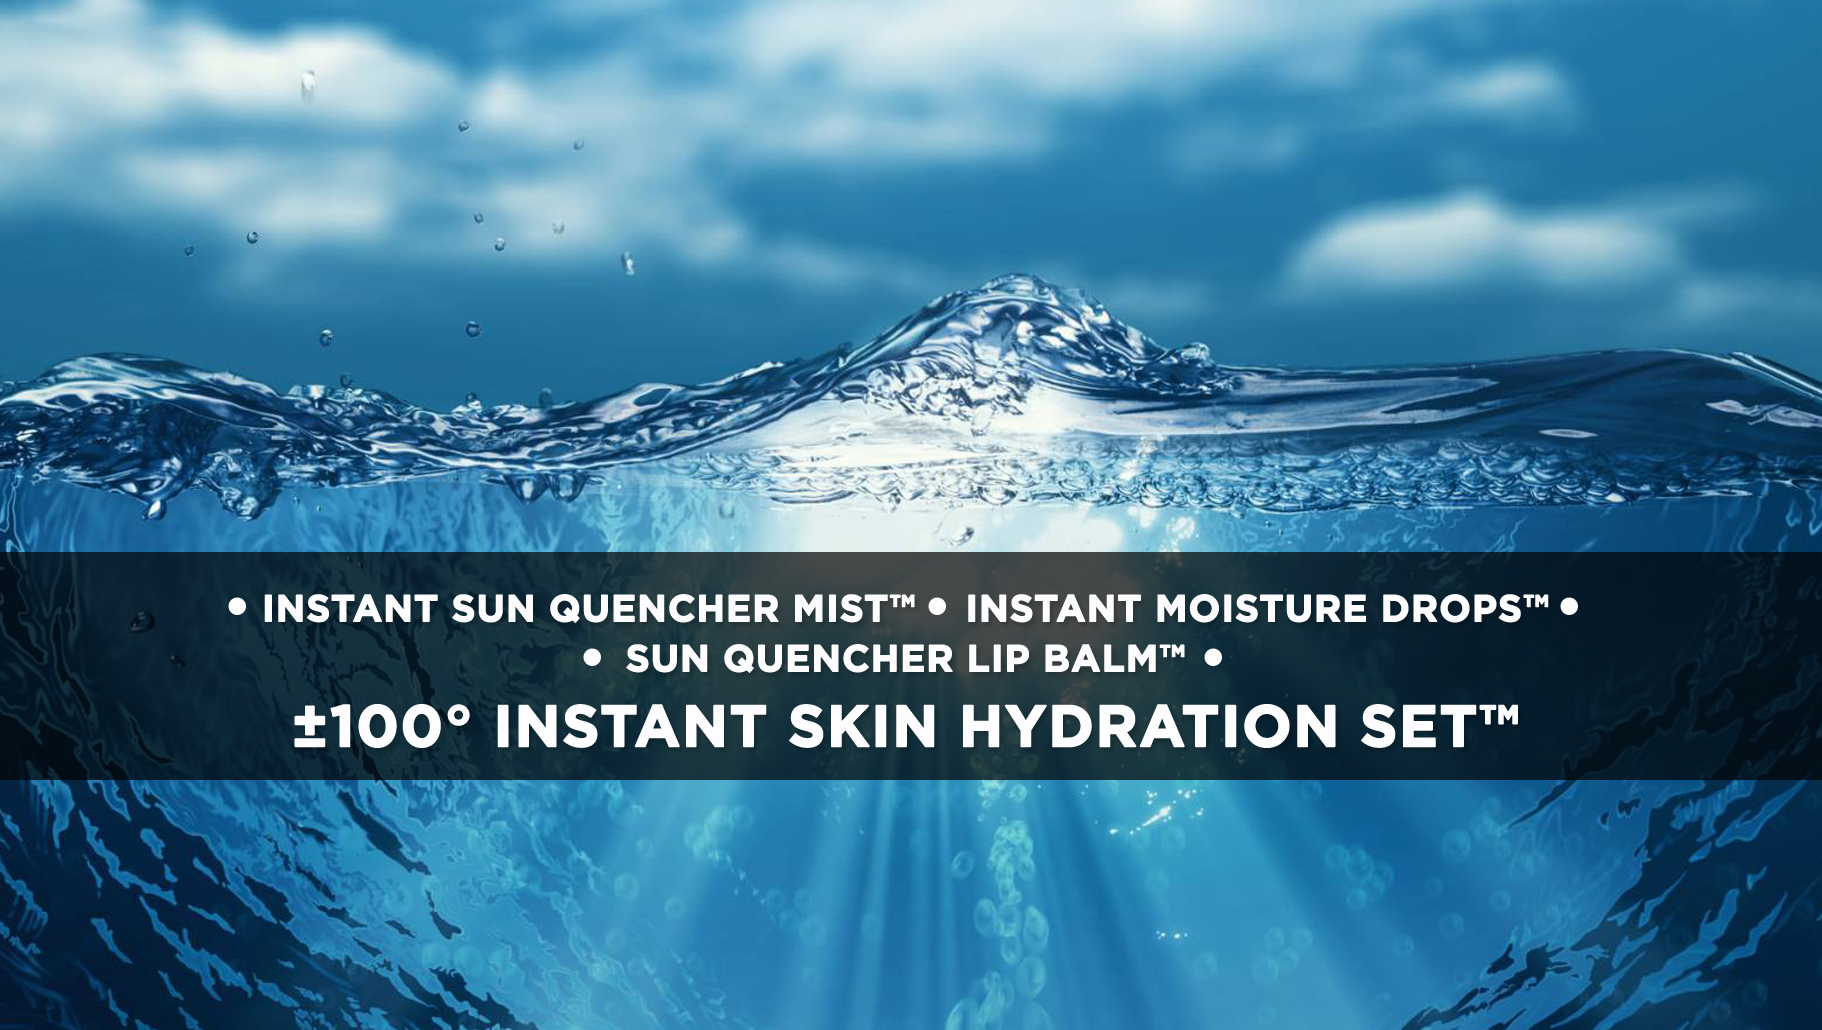 ±100° INSTANT SKIN HYDRATION SET™